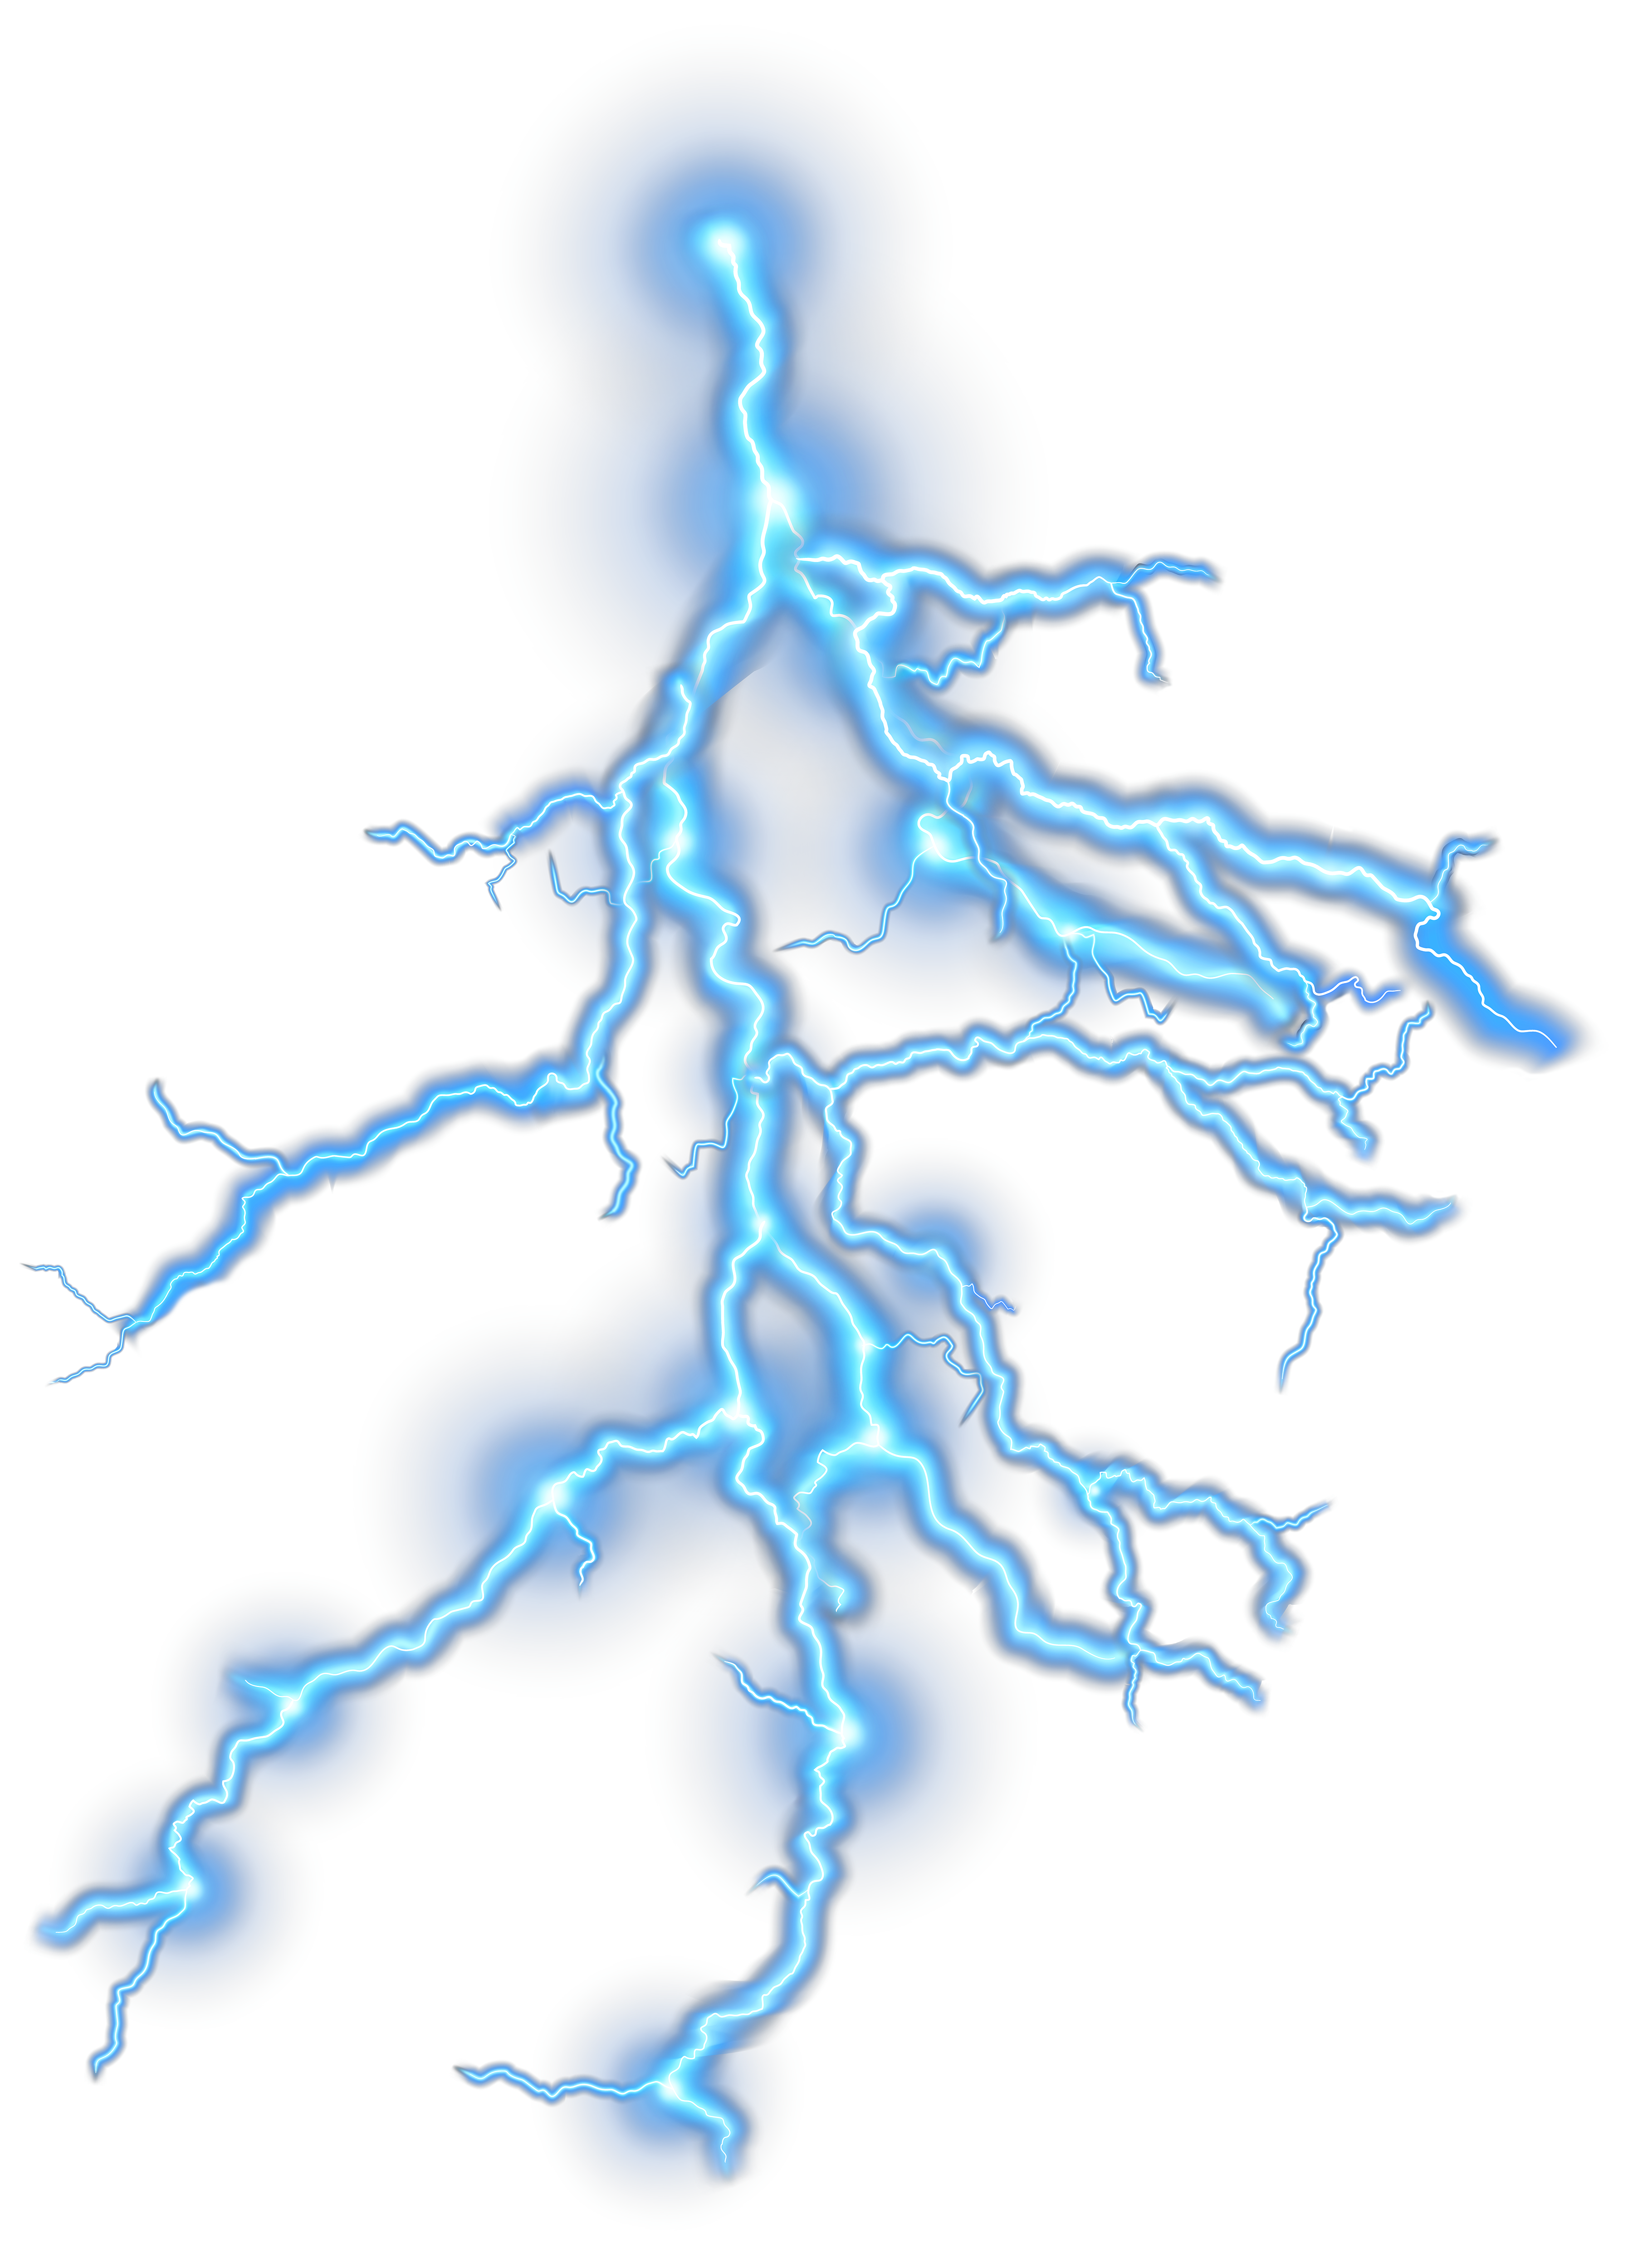 Thunder Transparent Png Clip Art Gallery Yopriceville High Quality Images And Transparent Png Free Cli Clip Art Banner Background Images Bubbles Wallpaper